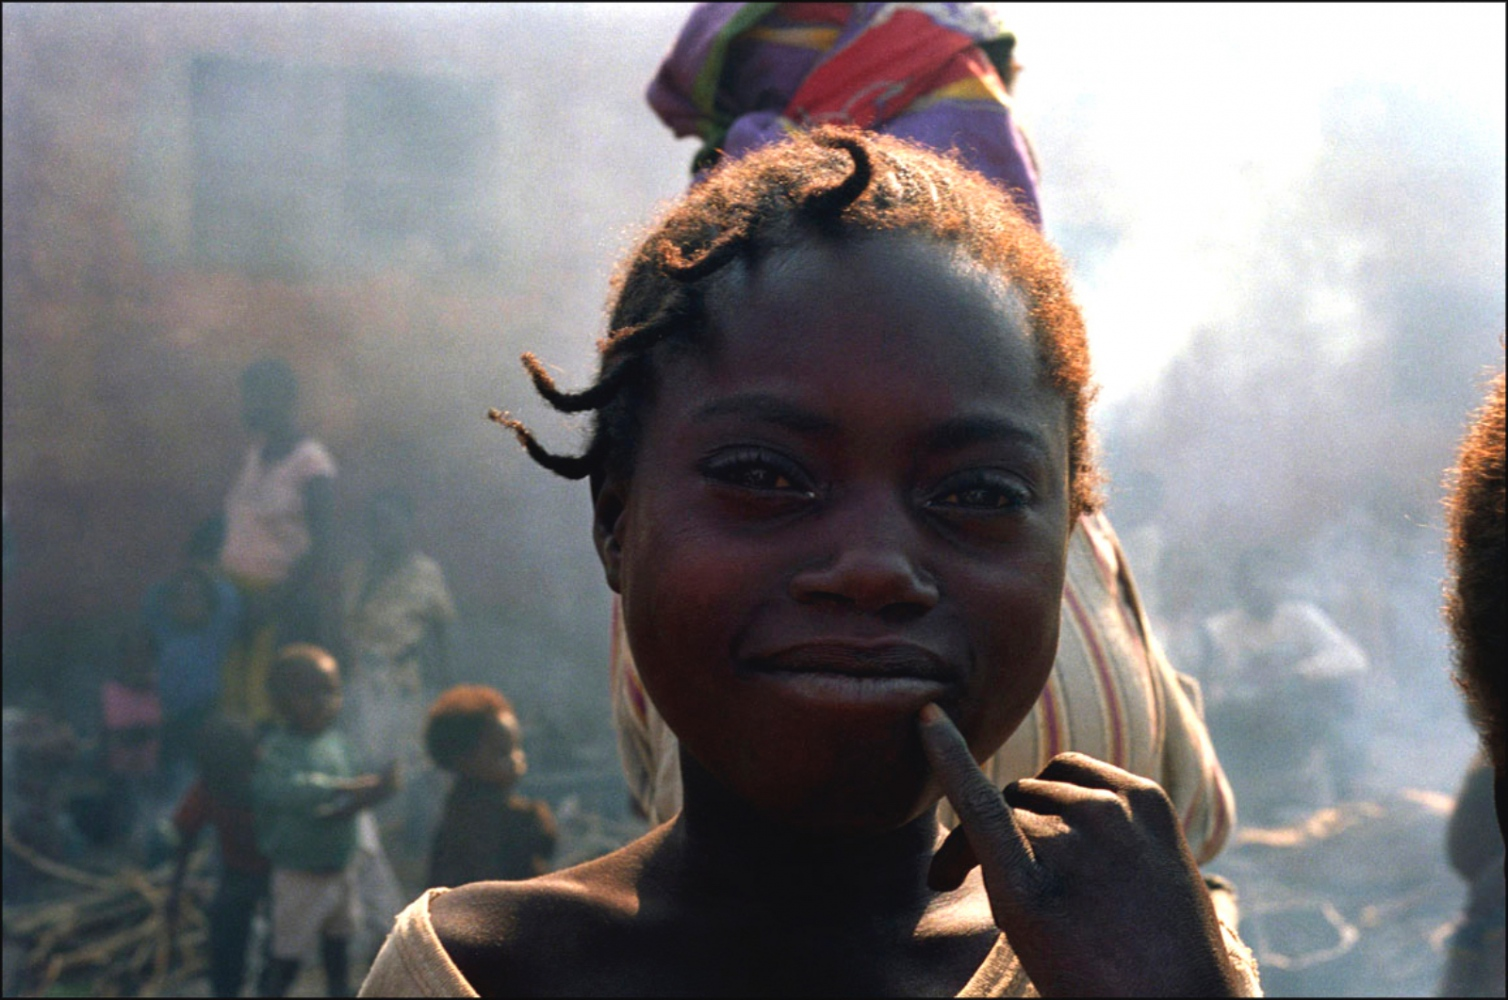 Smiling Girl with Pinky, Caala, Angola, July 2000